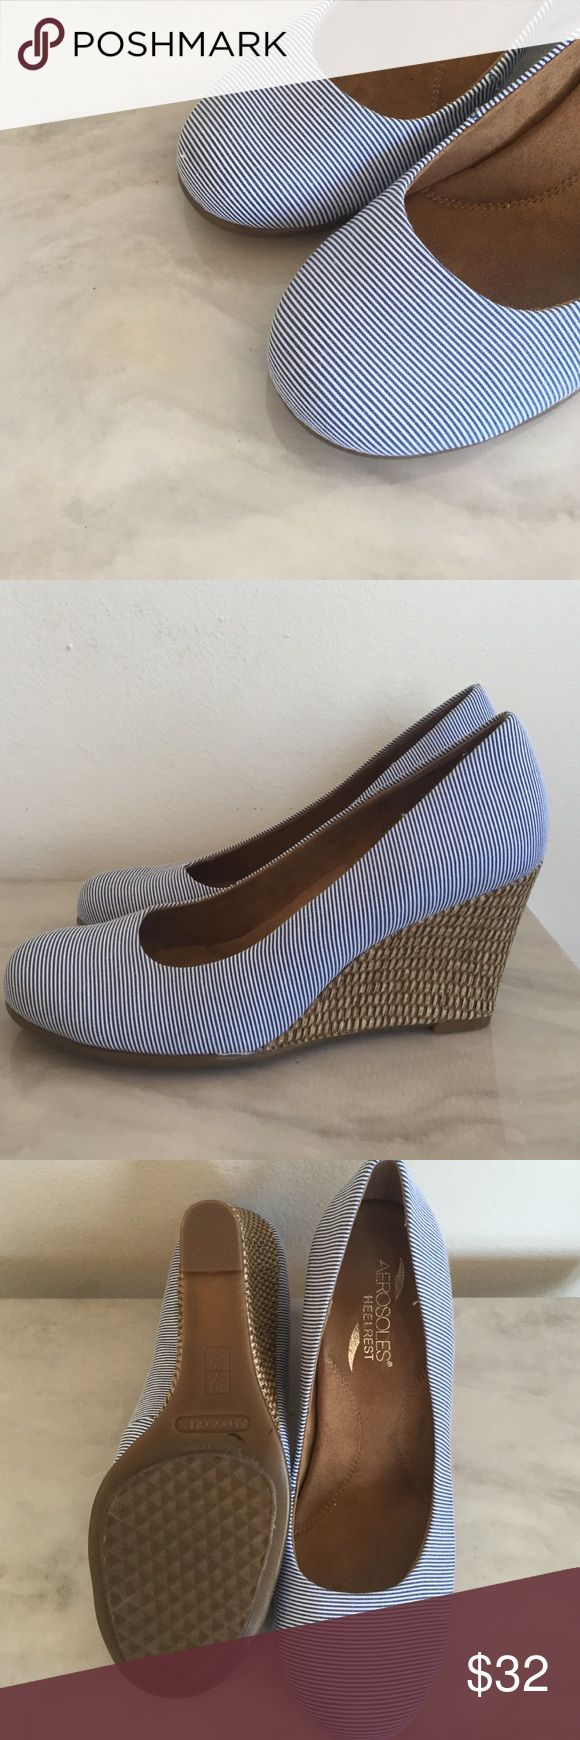 Aerosoles blue and white striped wedges New, never worn! Perfect for spring and summer AEROSOLES Shoes Wedges